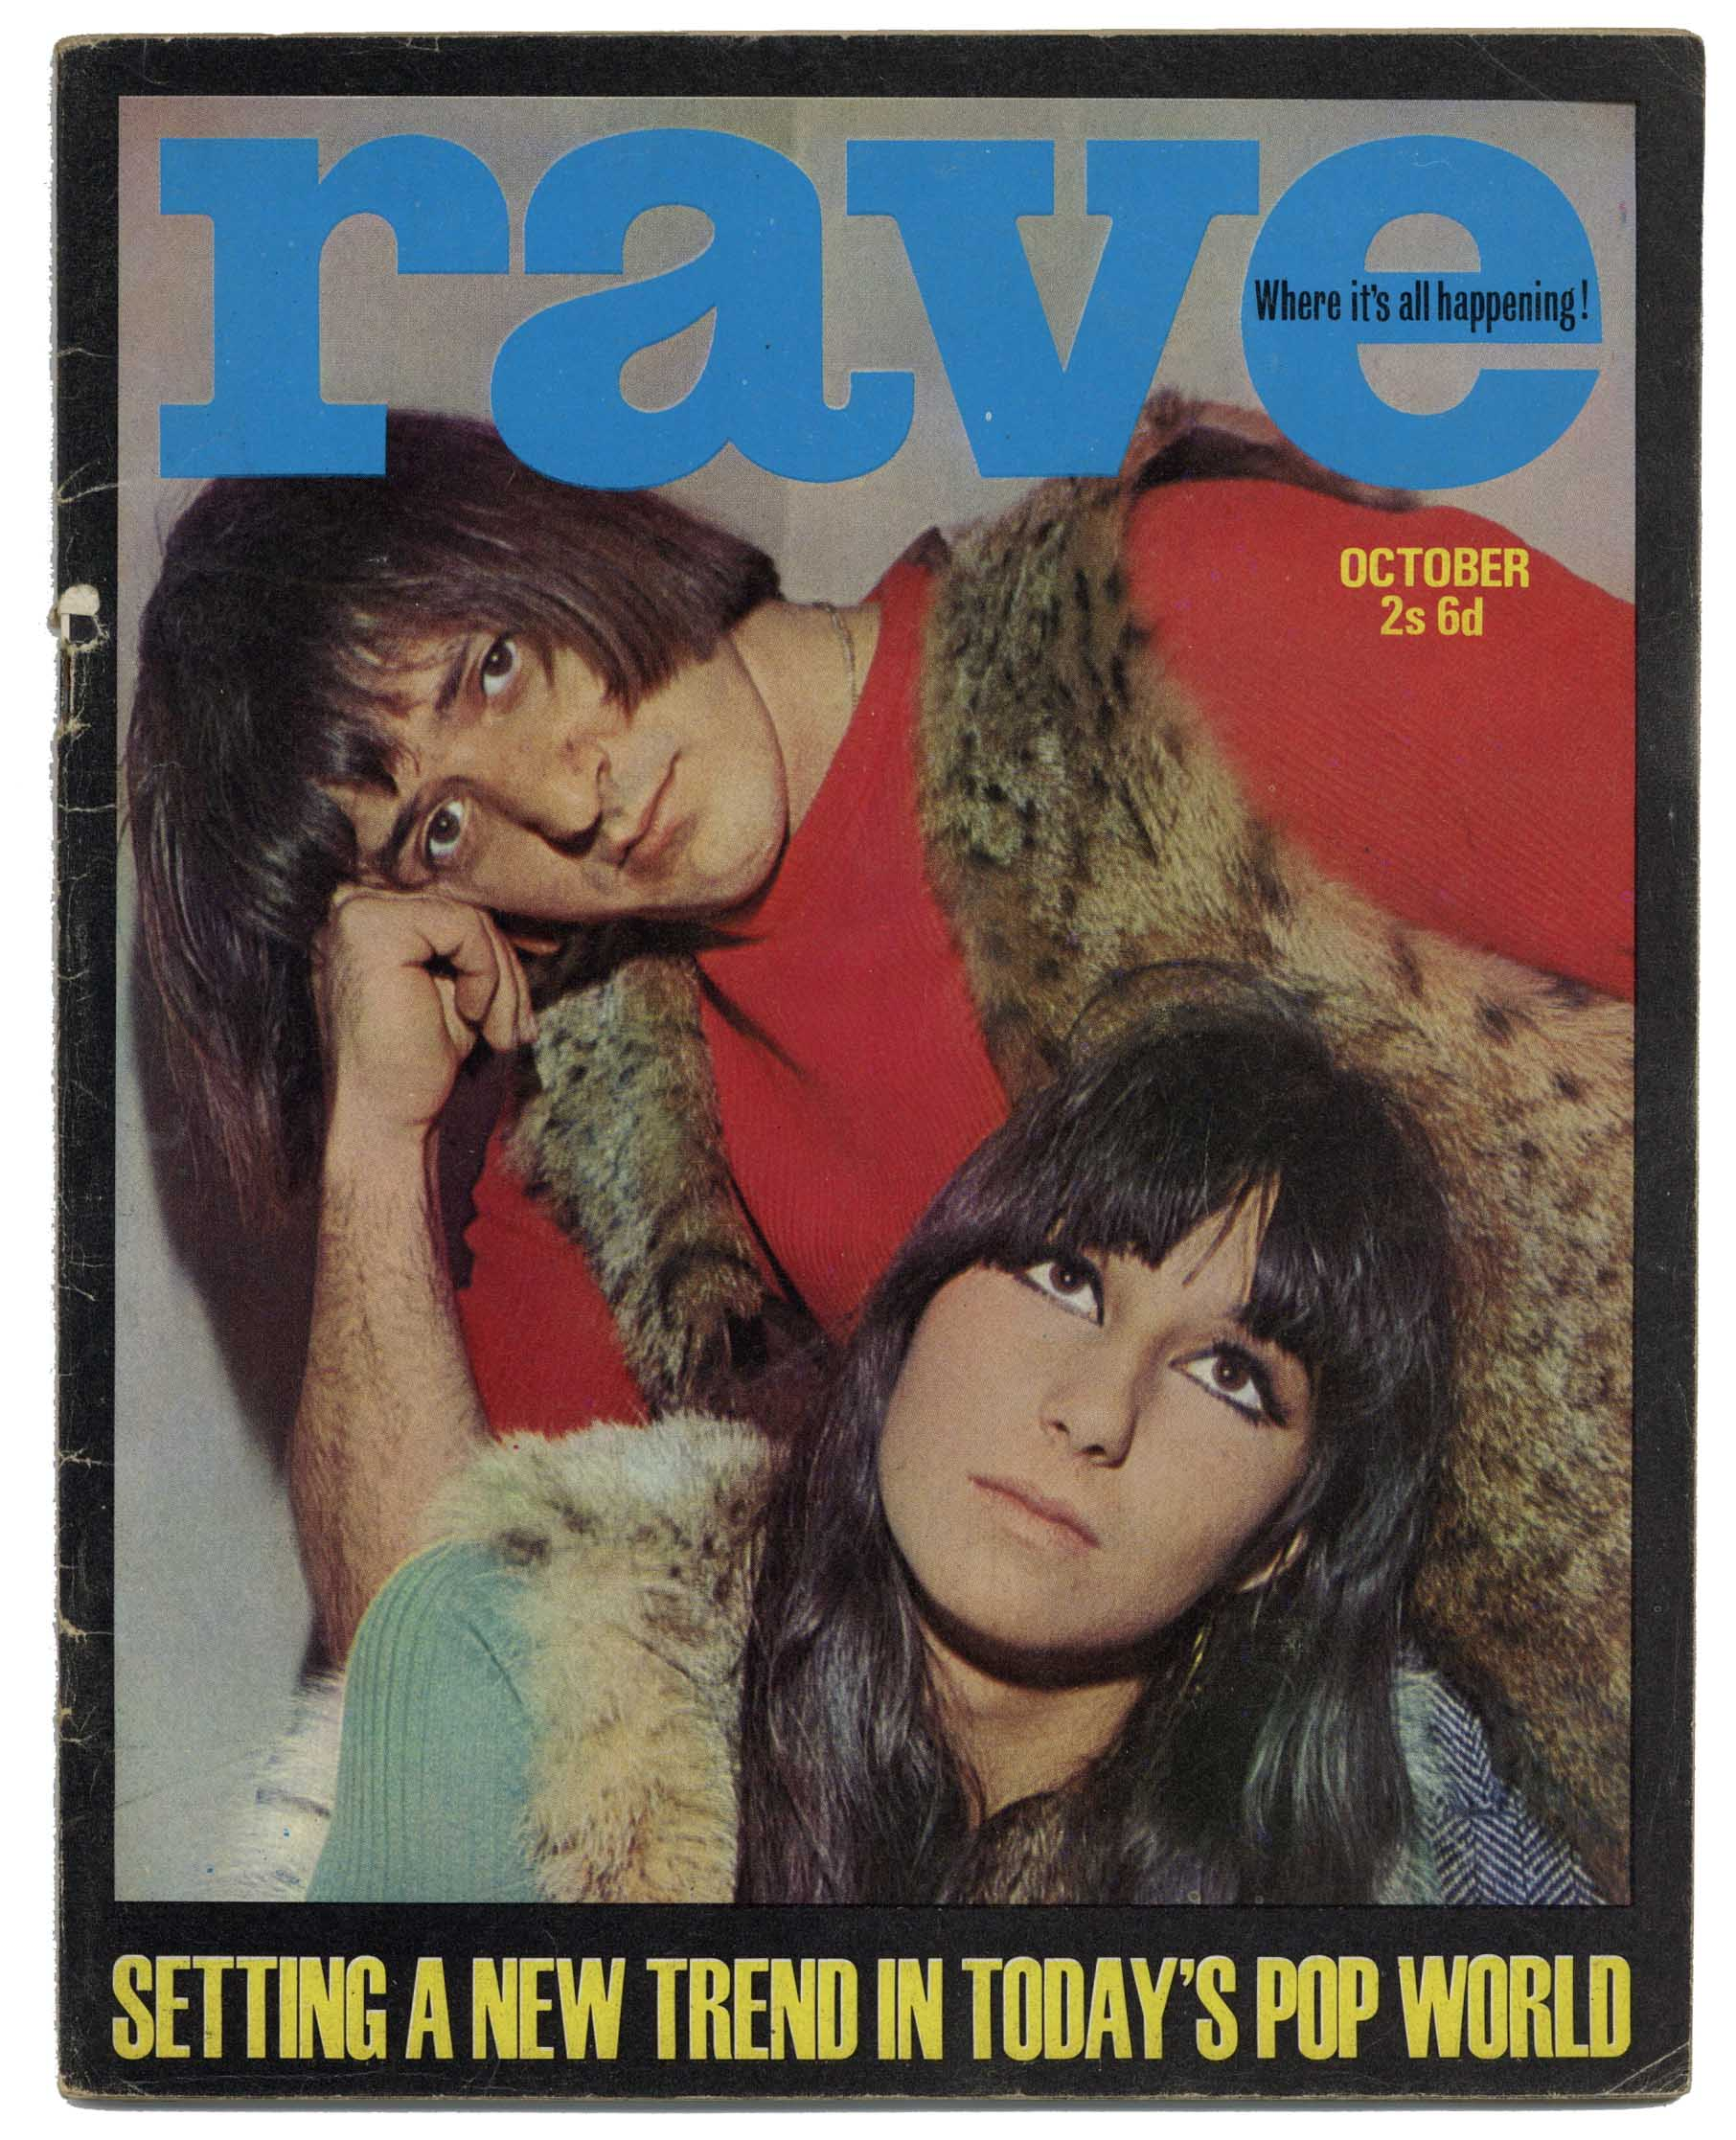 Rave Magazine October 1965 Mick Jagger Byrds Elvis Presley Beatles Sonny & Cher